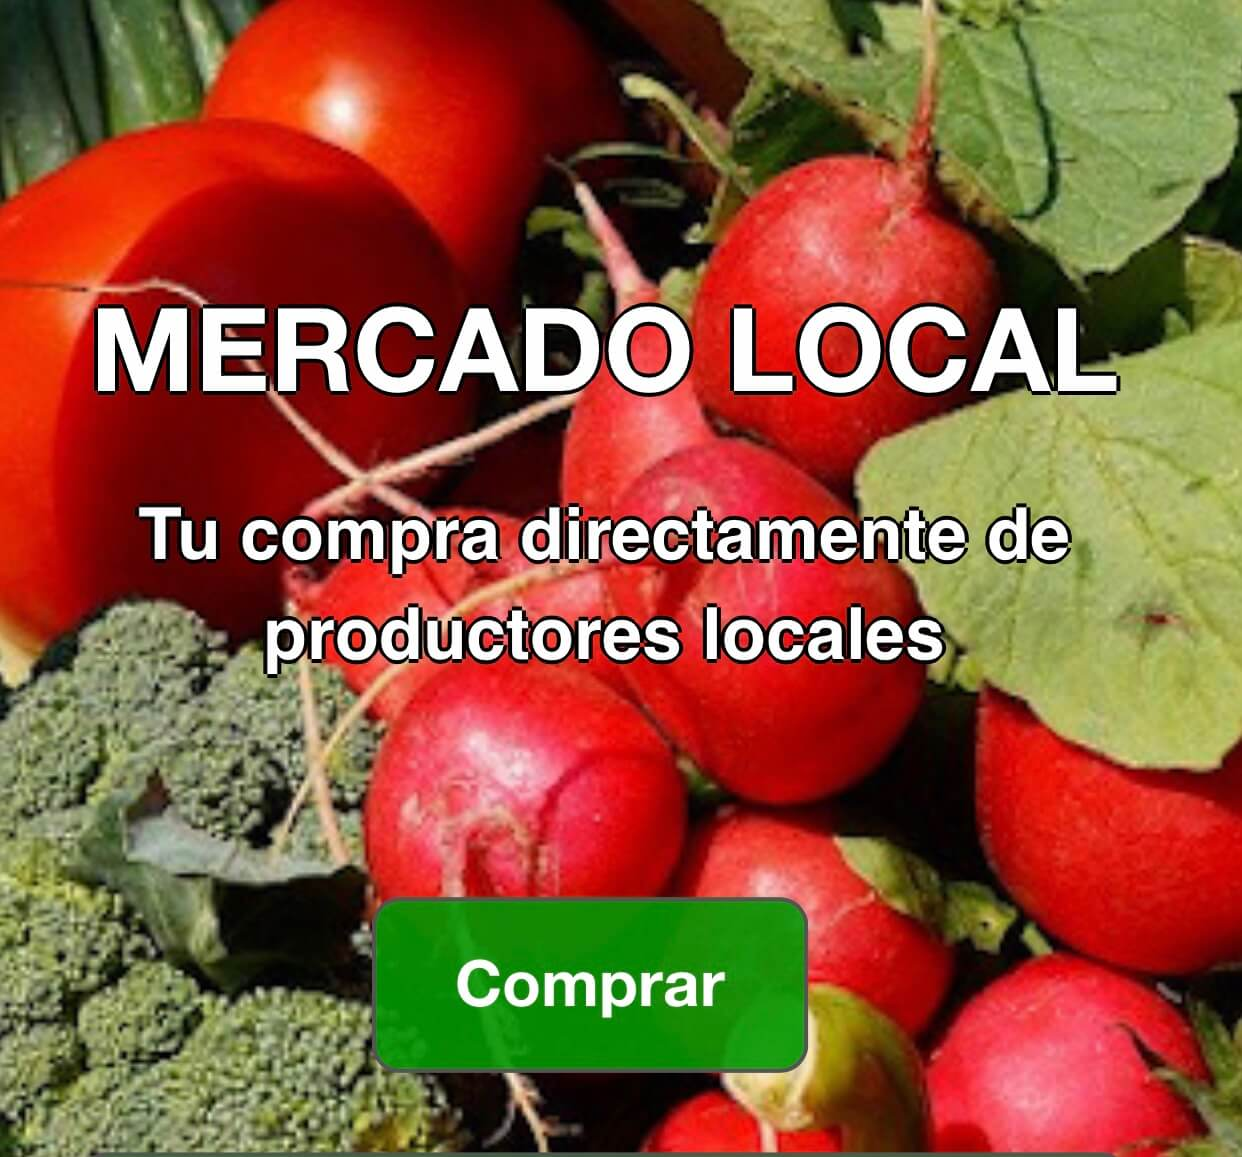 Mercado local en Tablón de anuncios